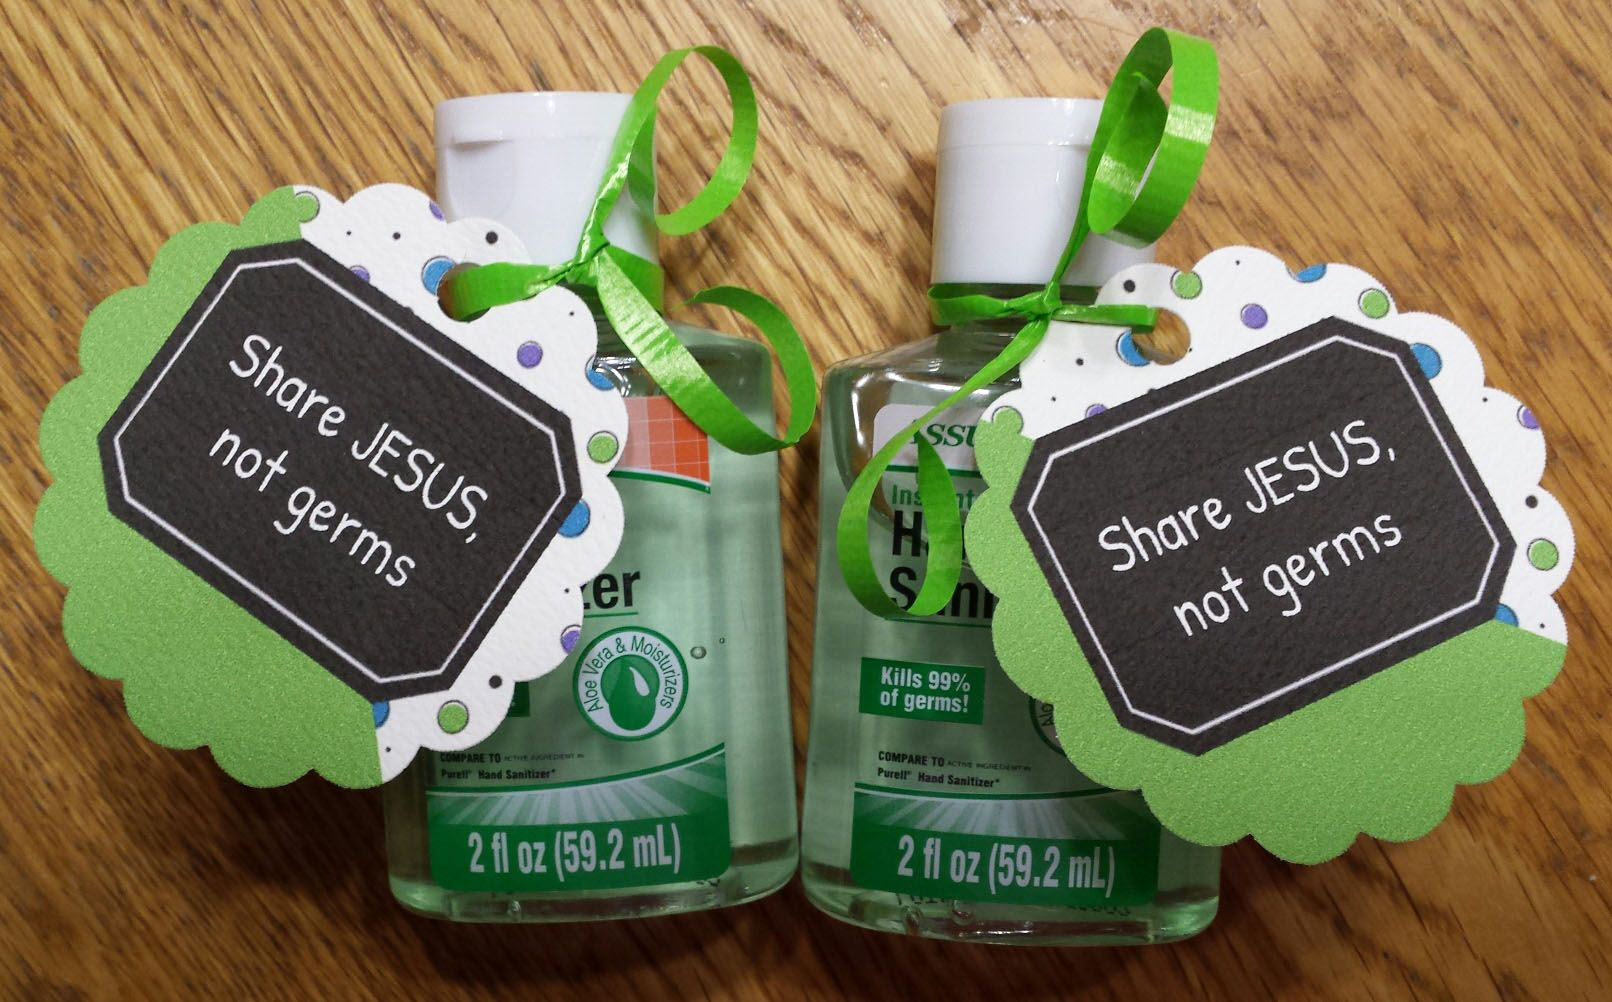 Share Jesus Not Germs Hand Sanitizer Gift Idea Hand